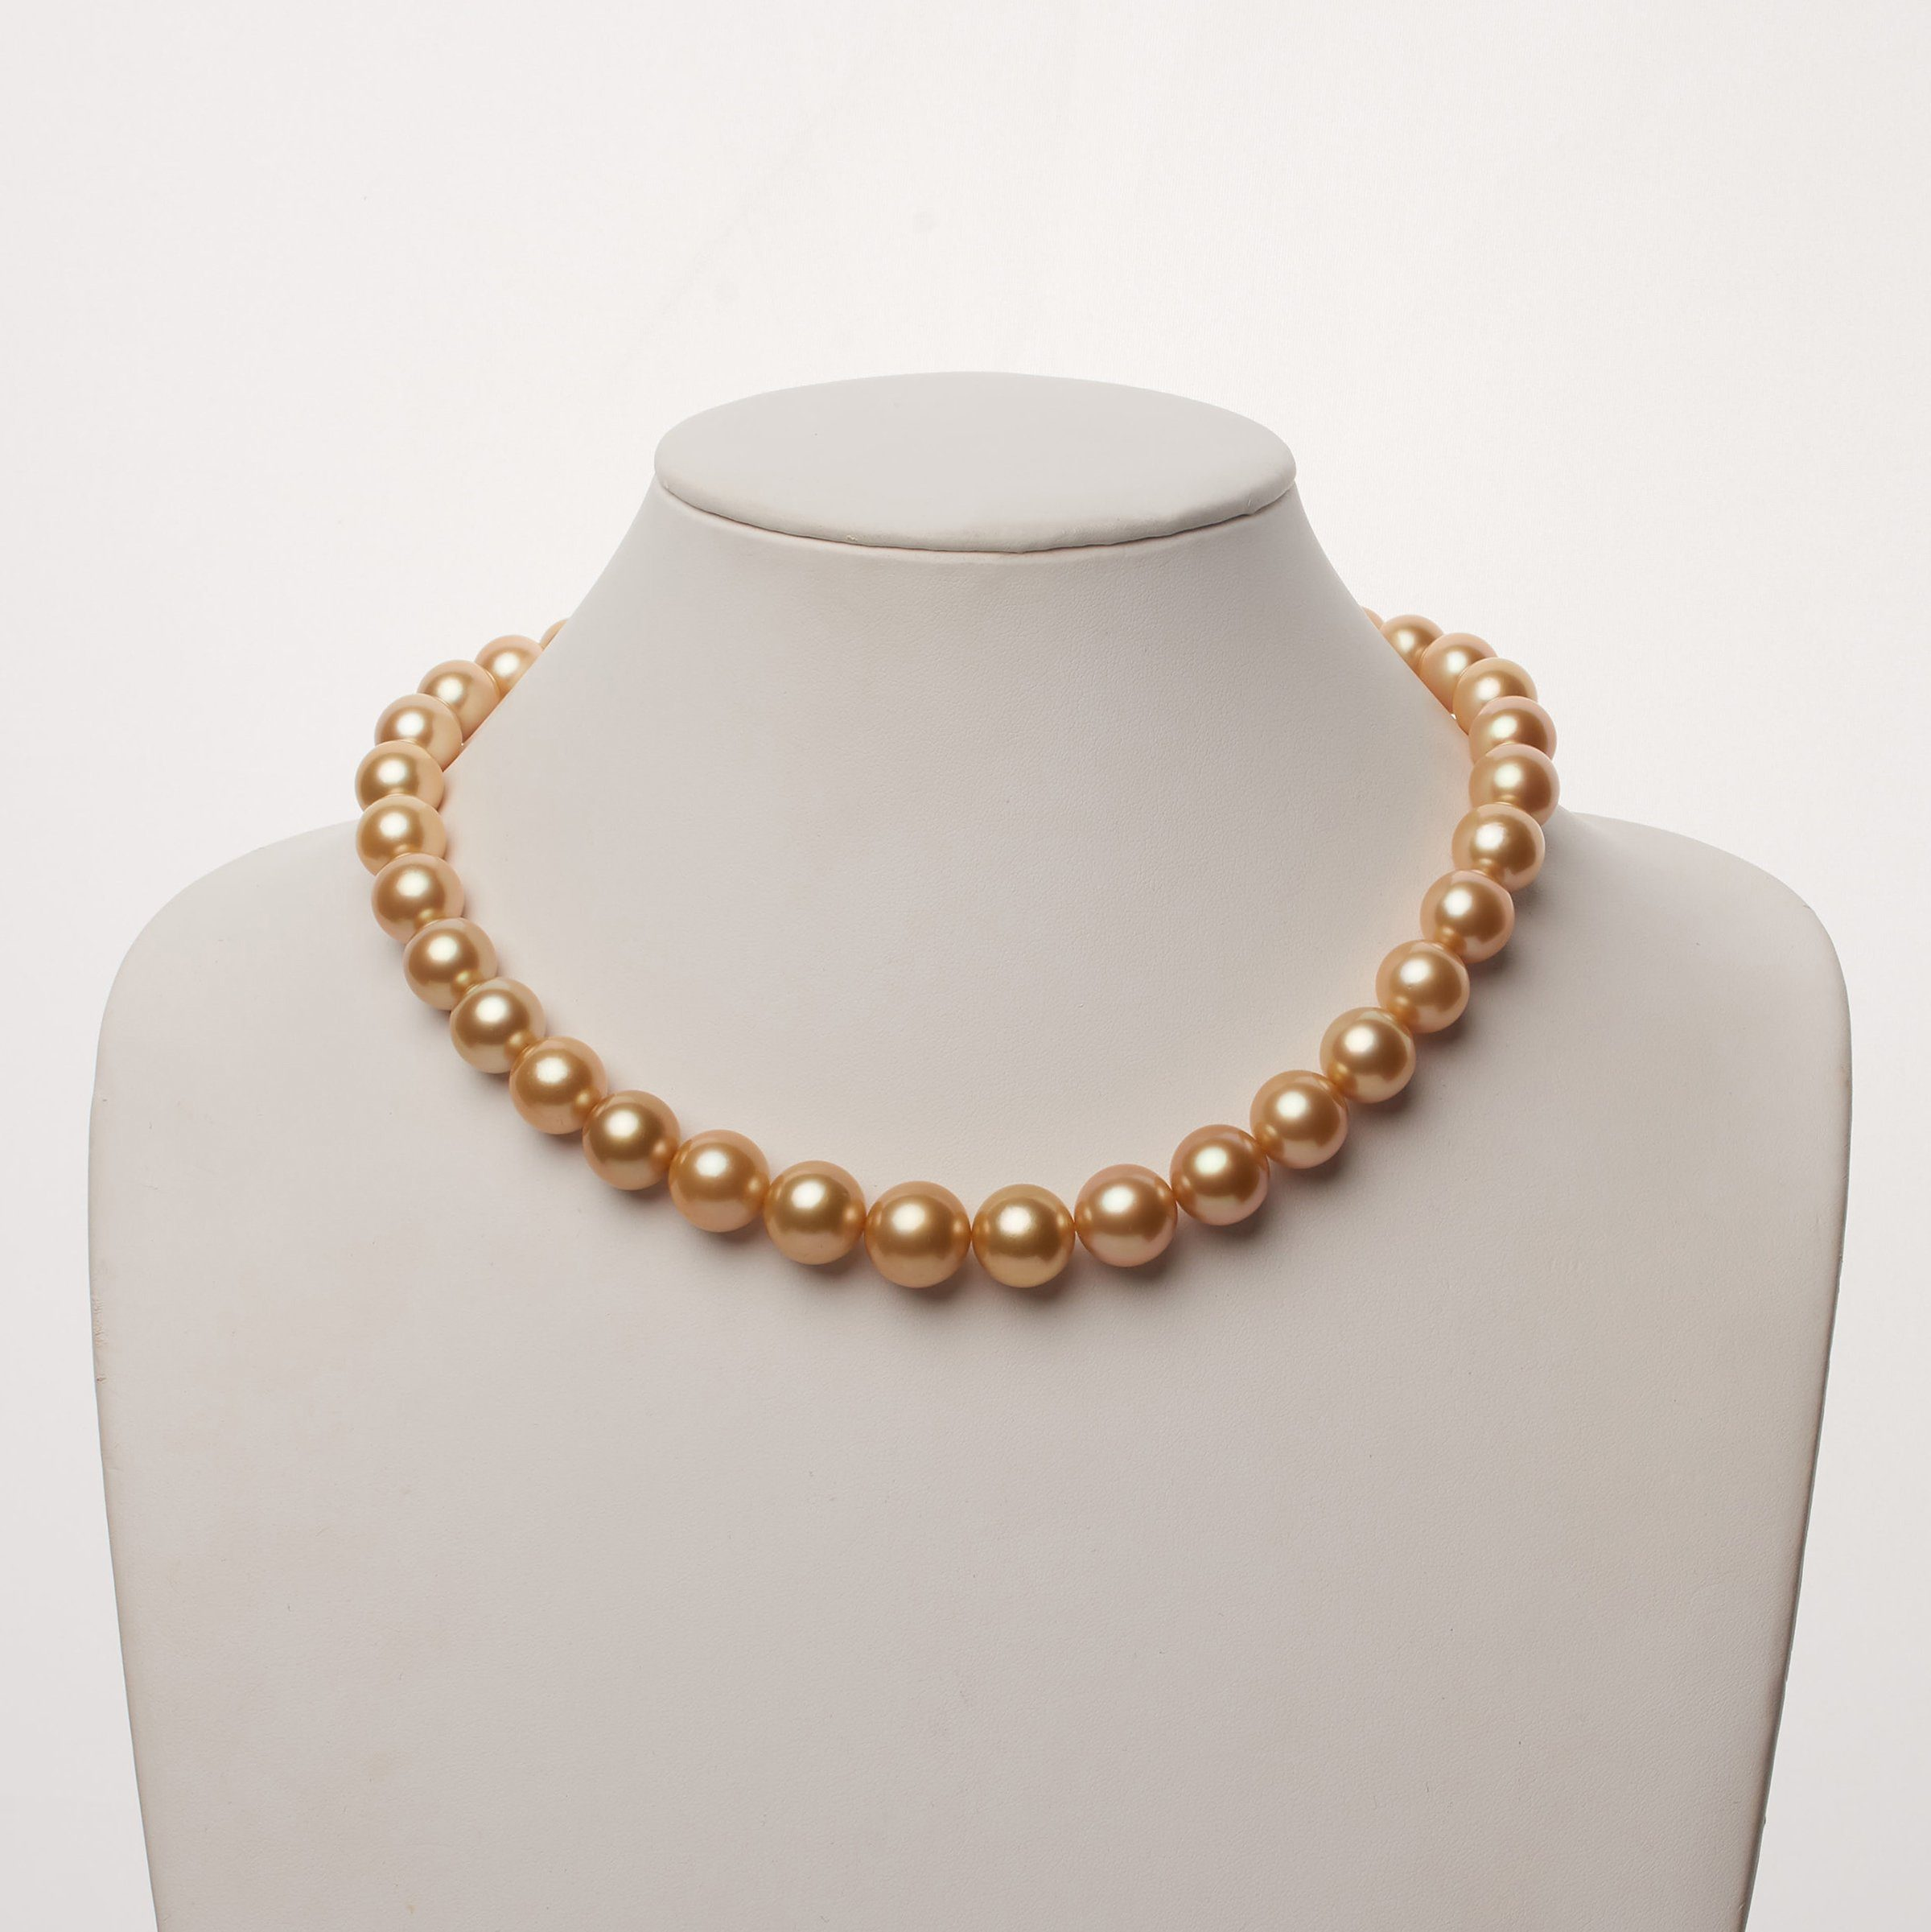 11.1-14.2 mm AA+/AAA Golden South Sea Round Pearl Necklace